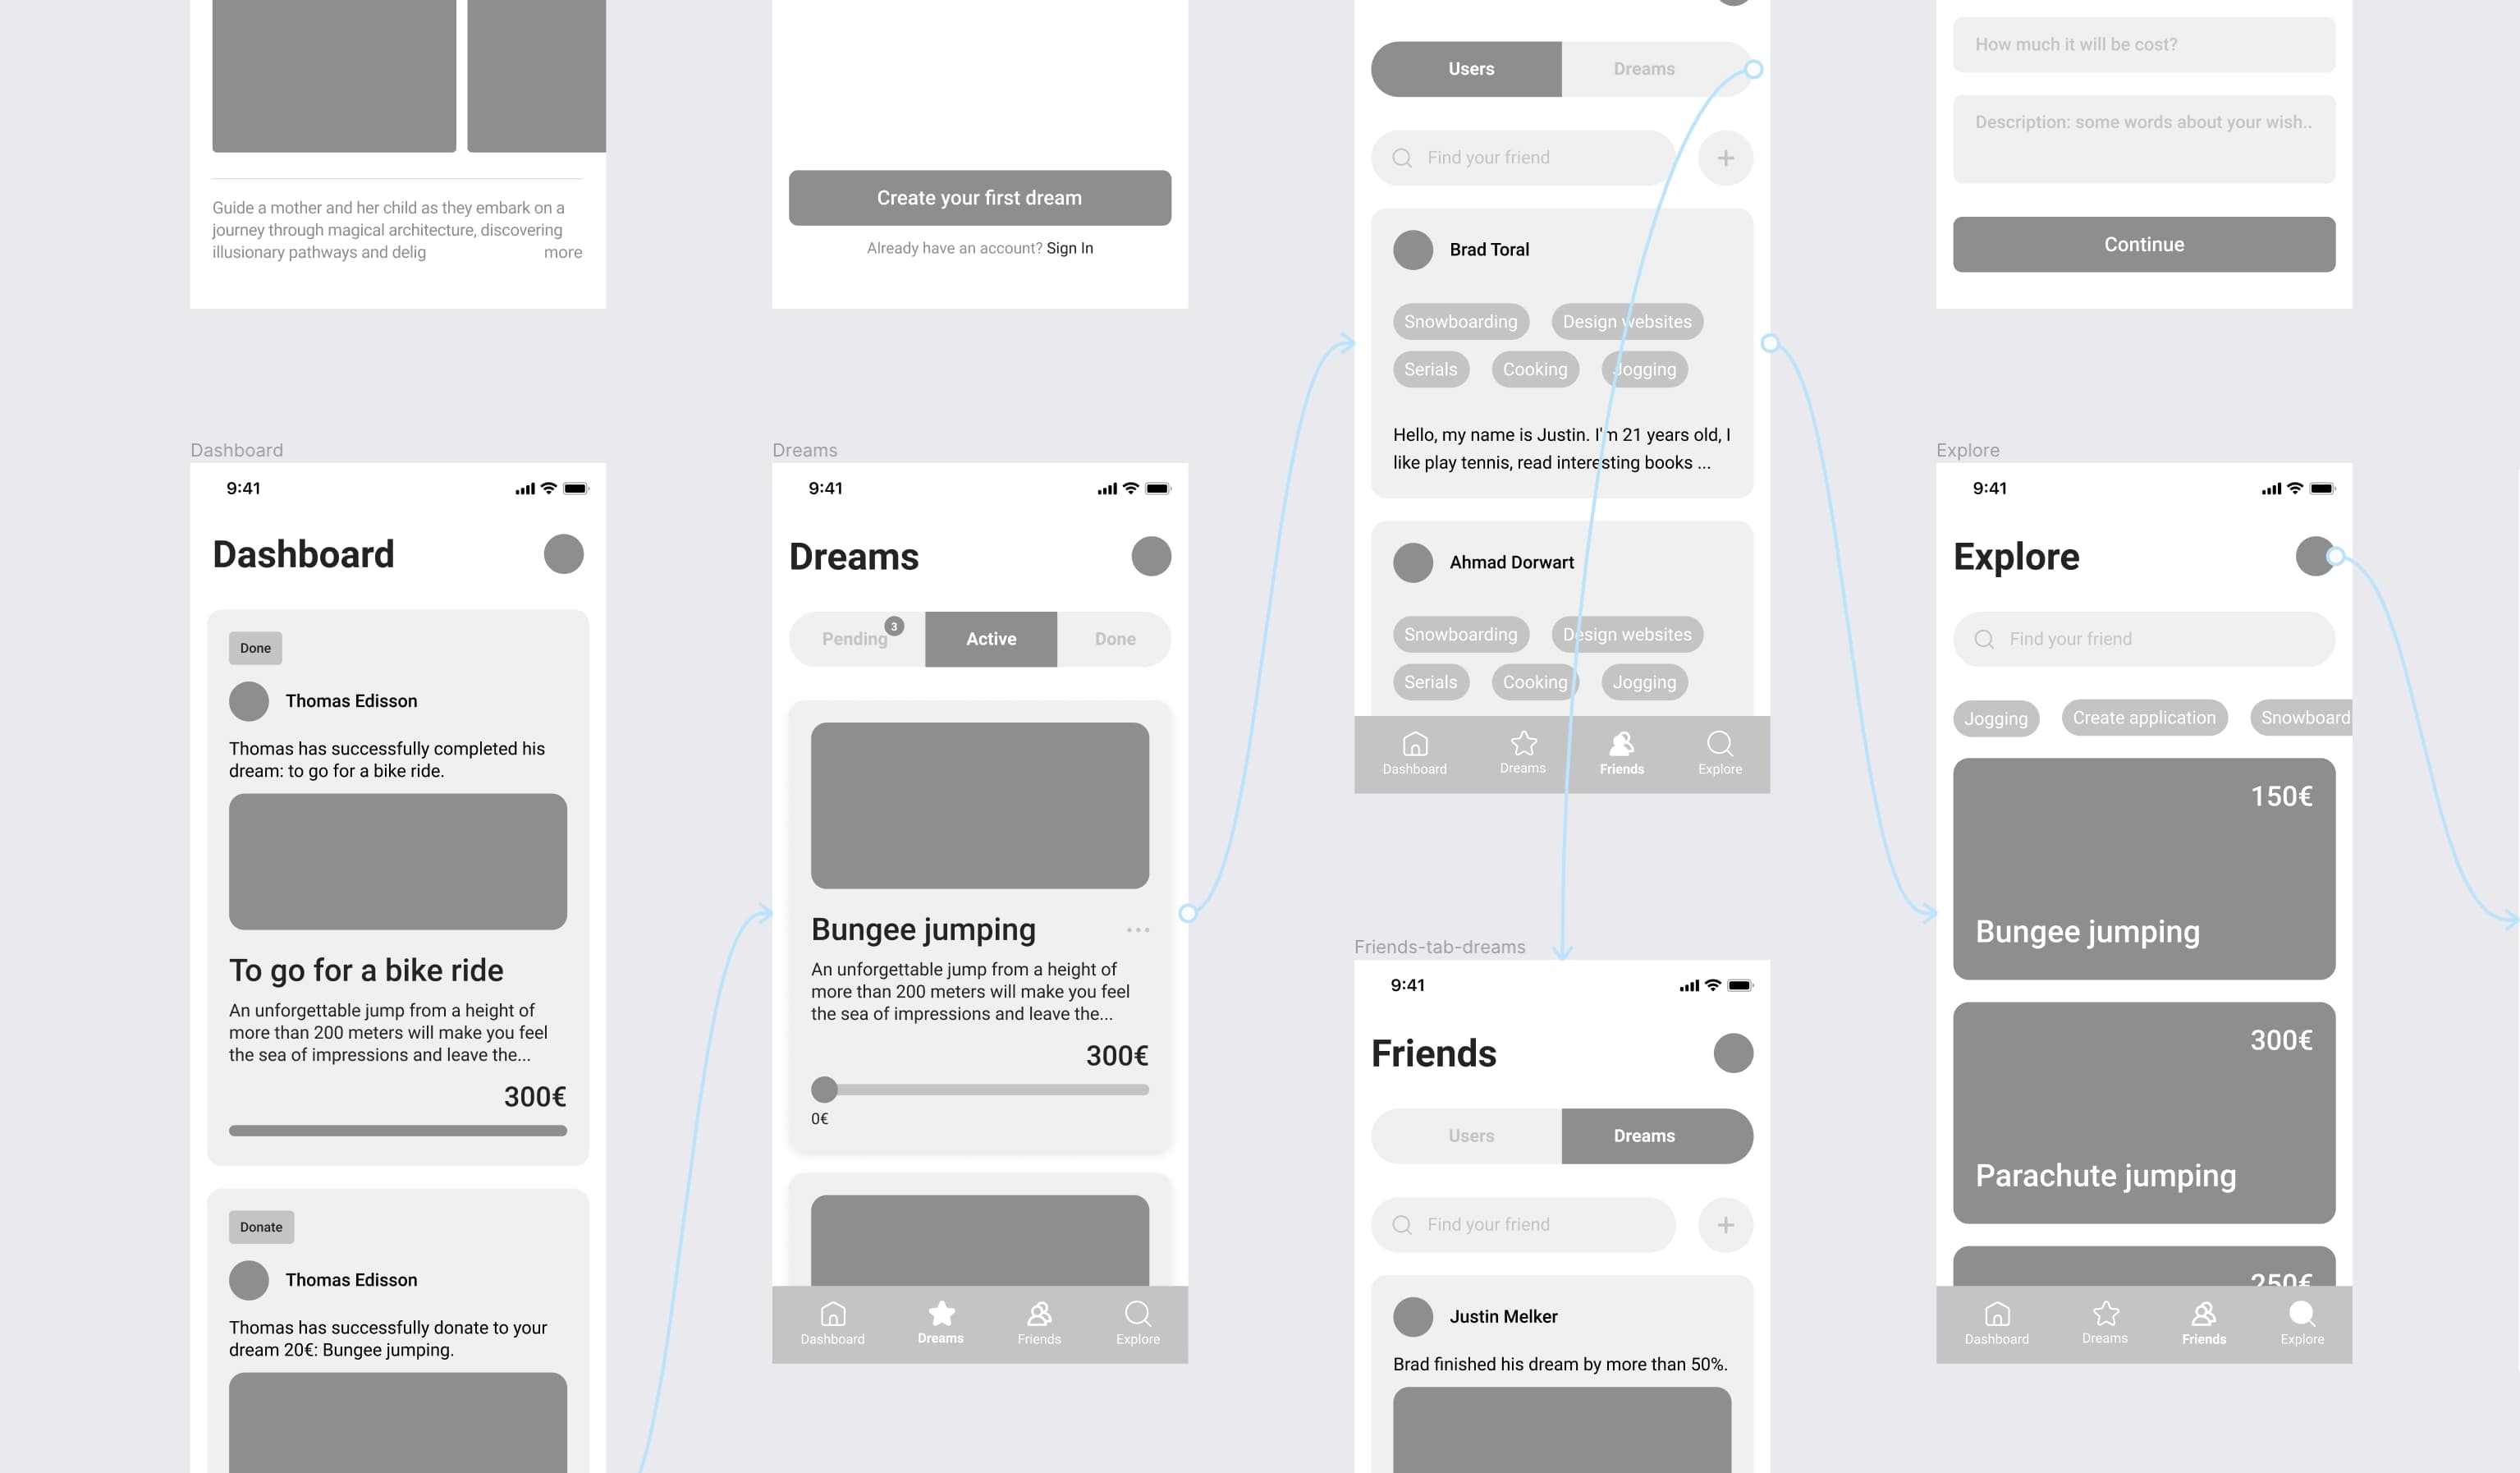 Application prototypes designed by Codica team